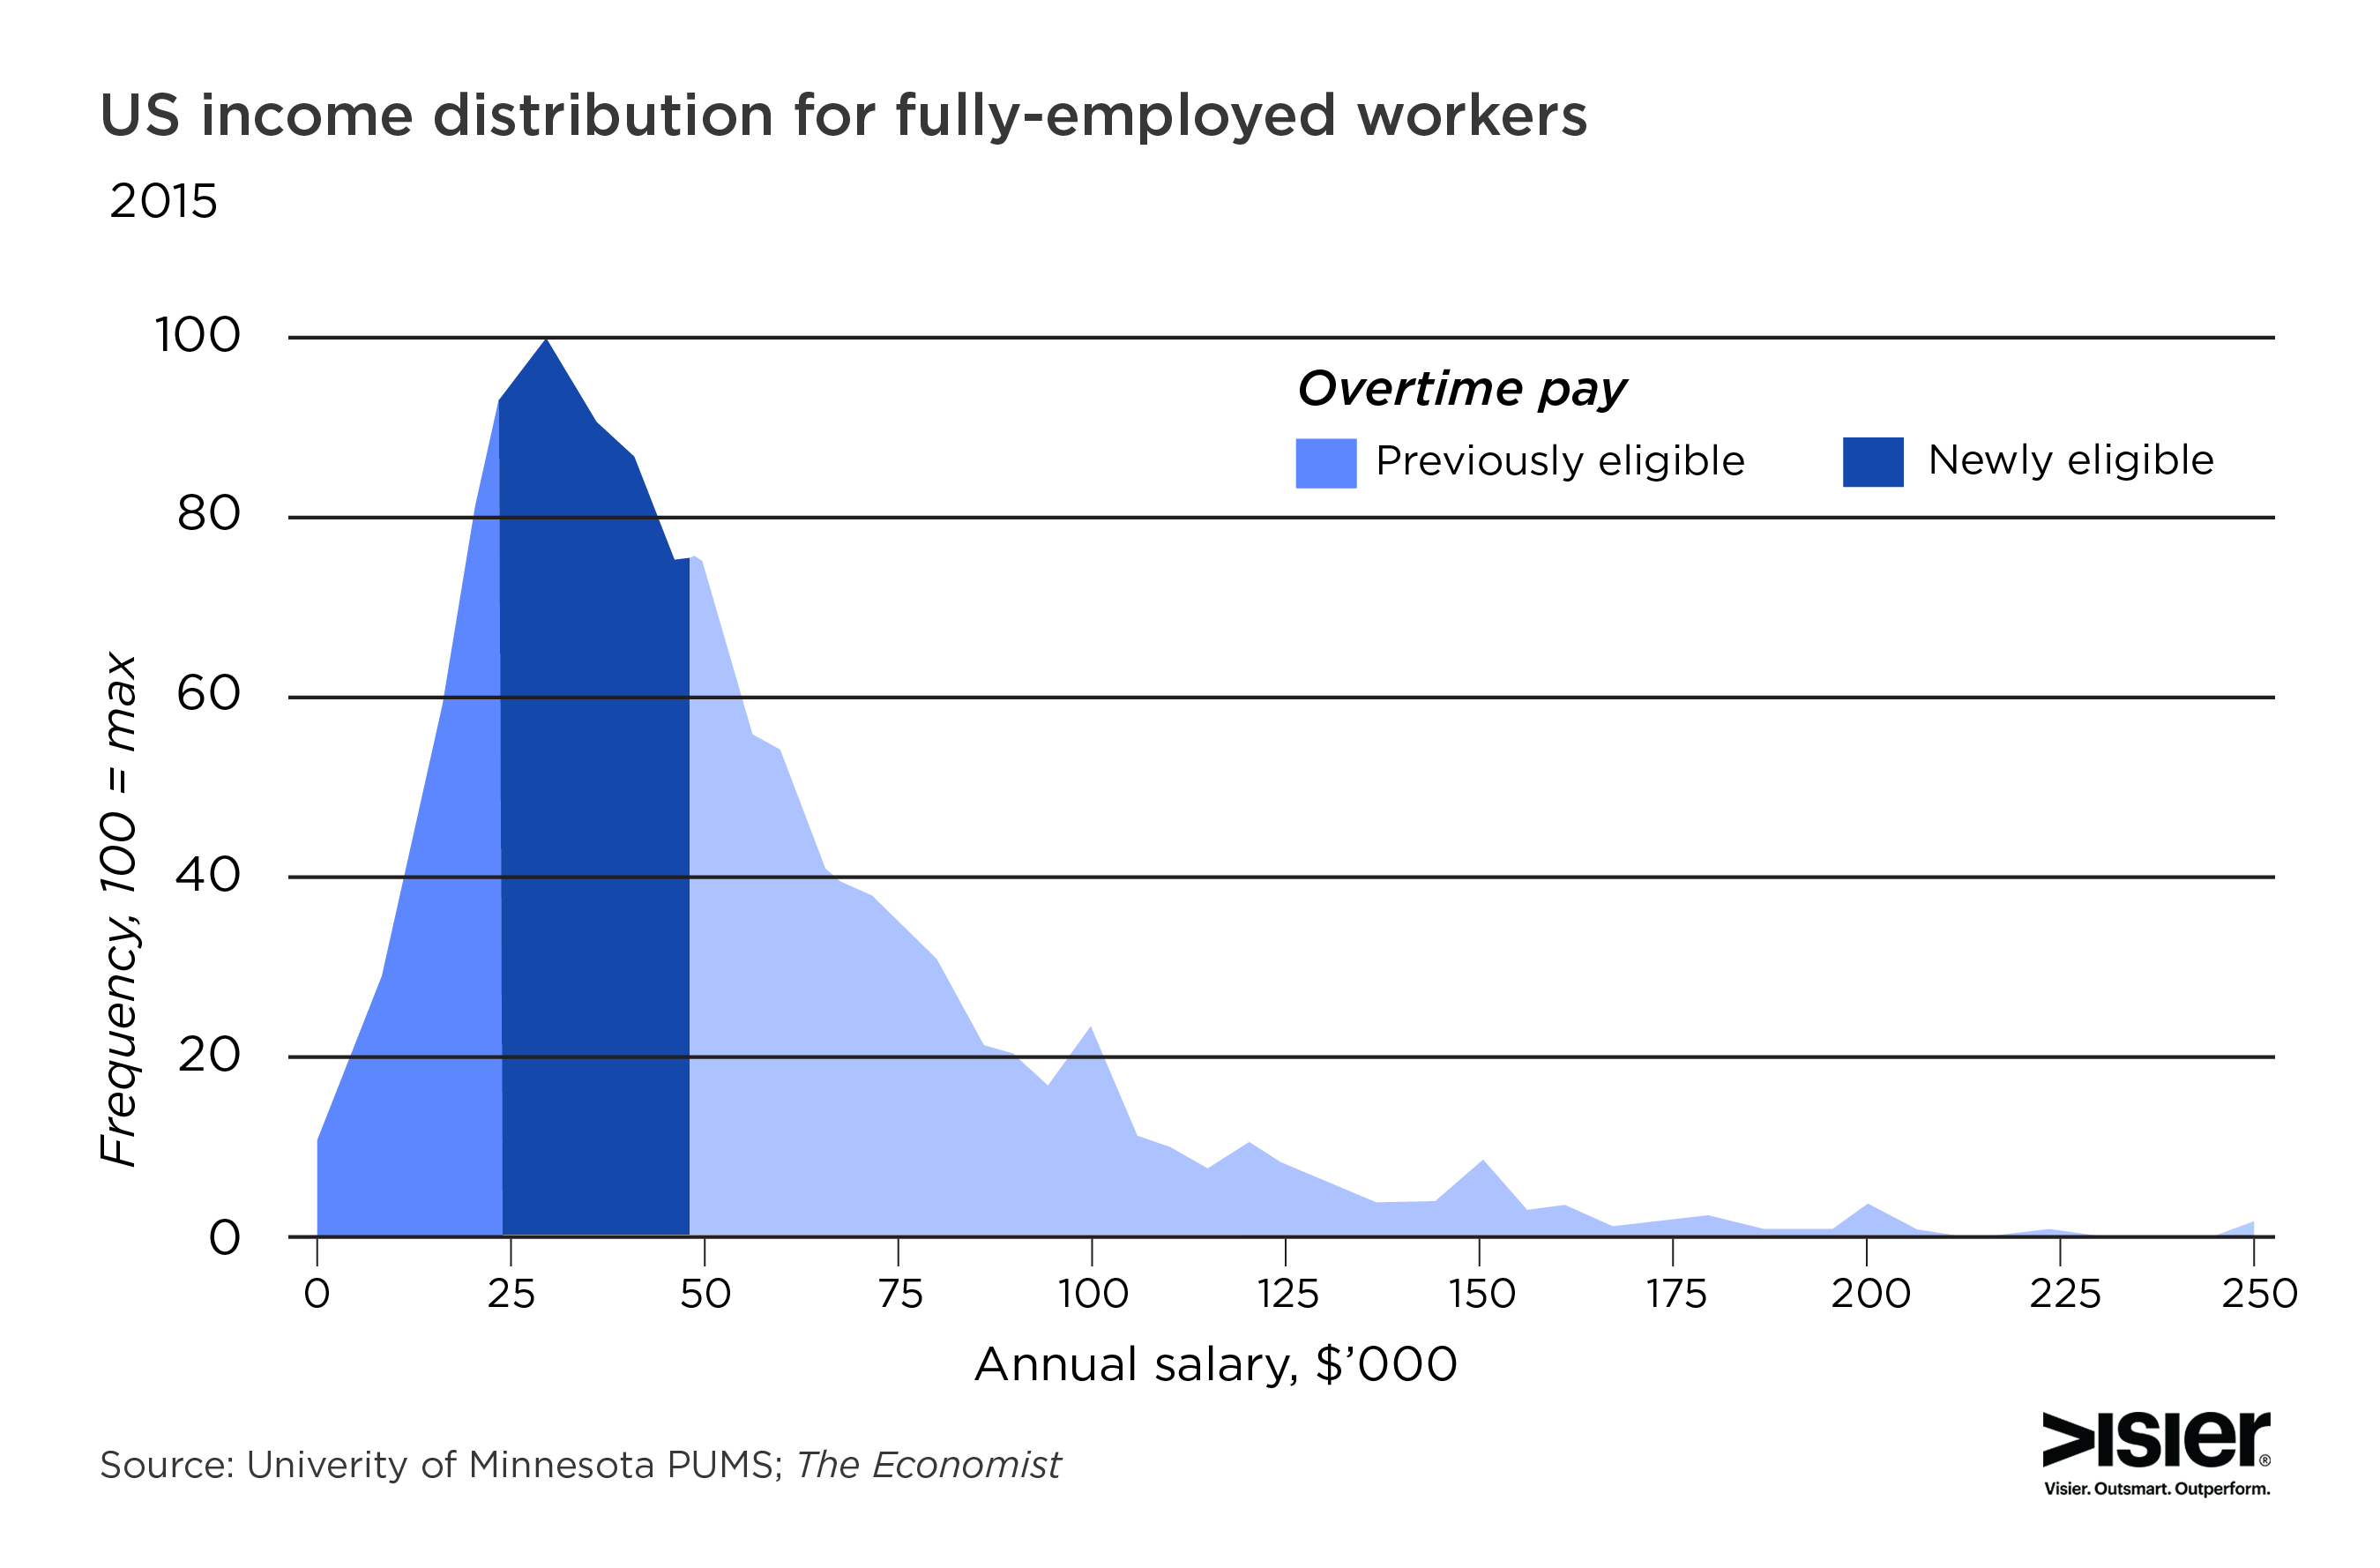 Graph showing the US income distribution for fully-employed workers who are newly eligible for overtime under the new FLSA rule